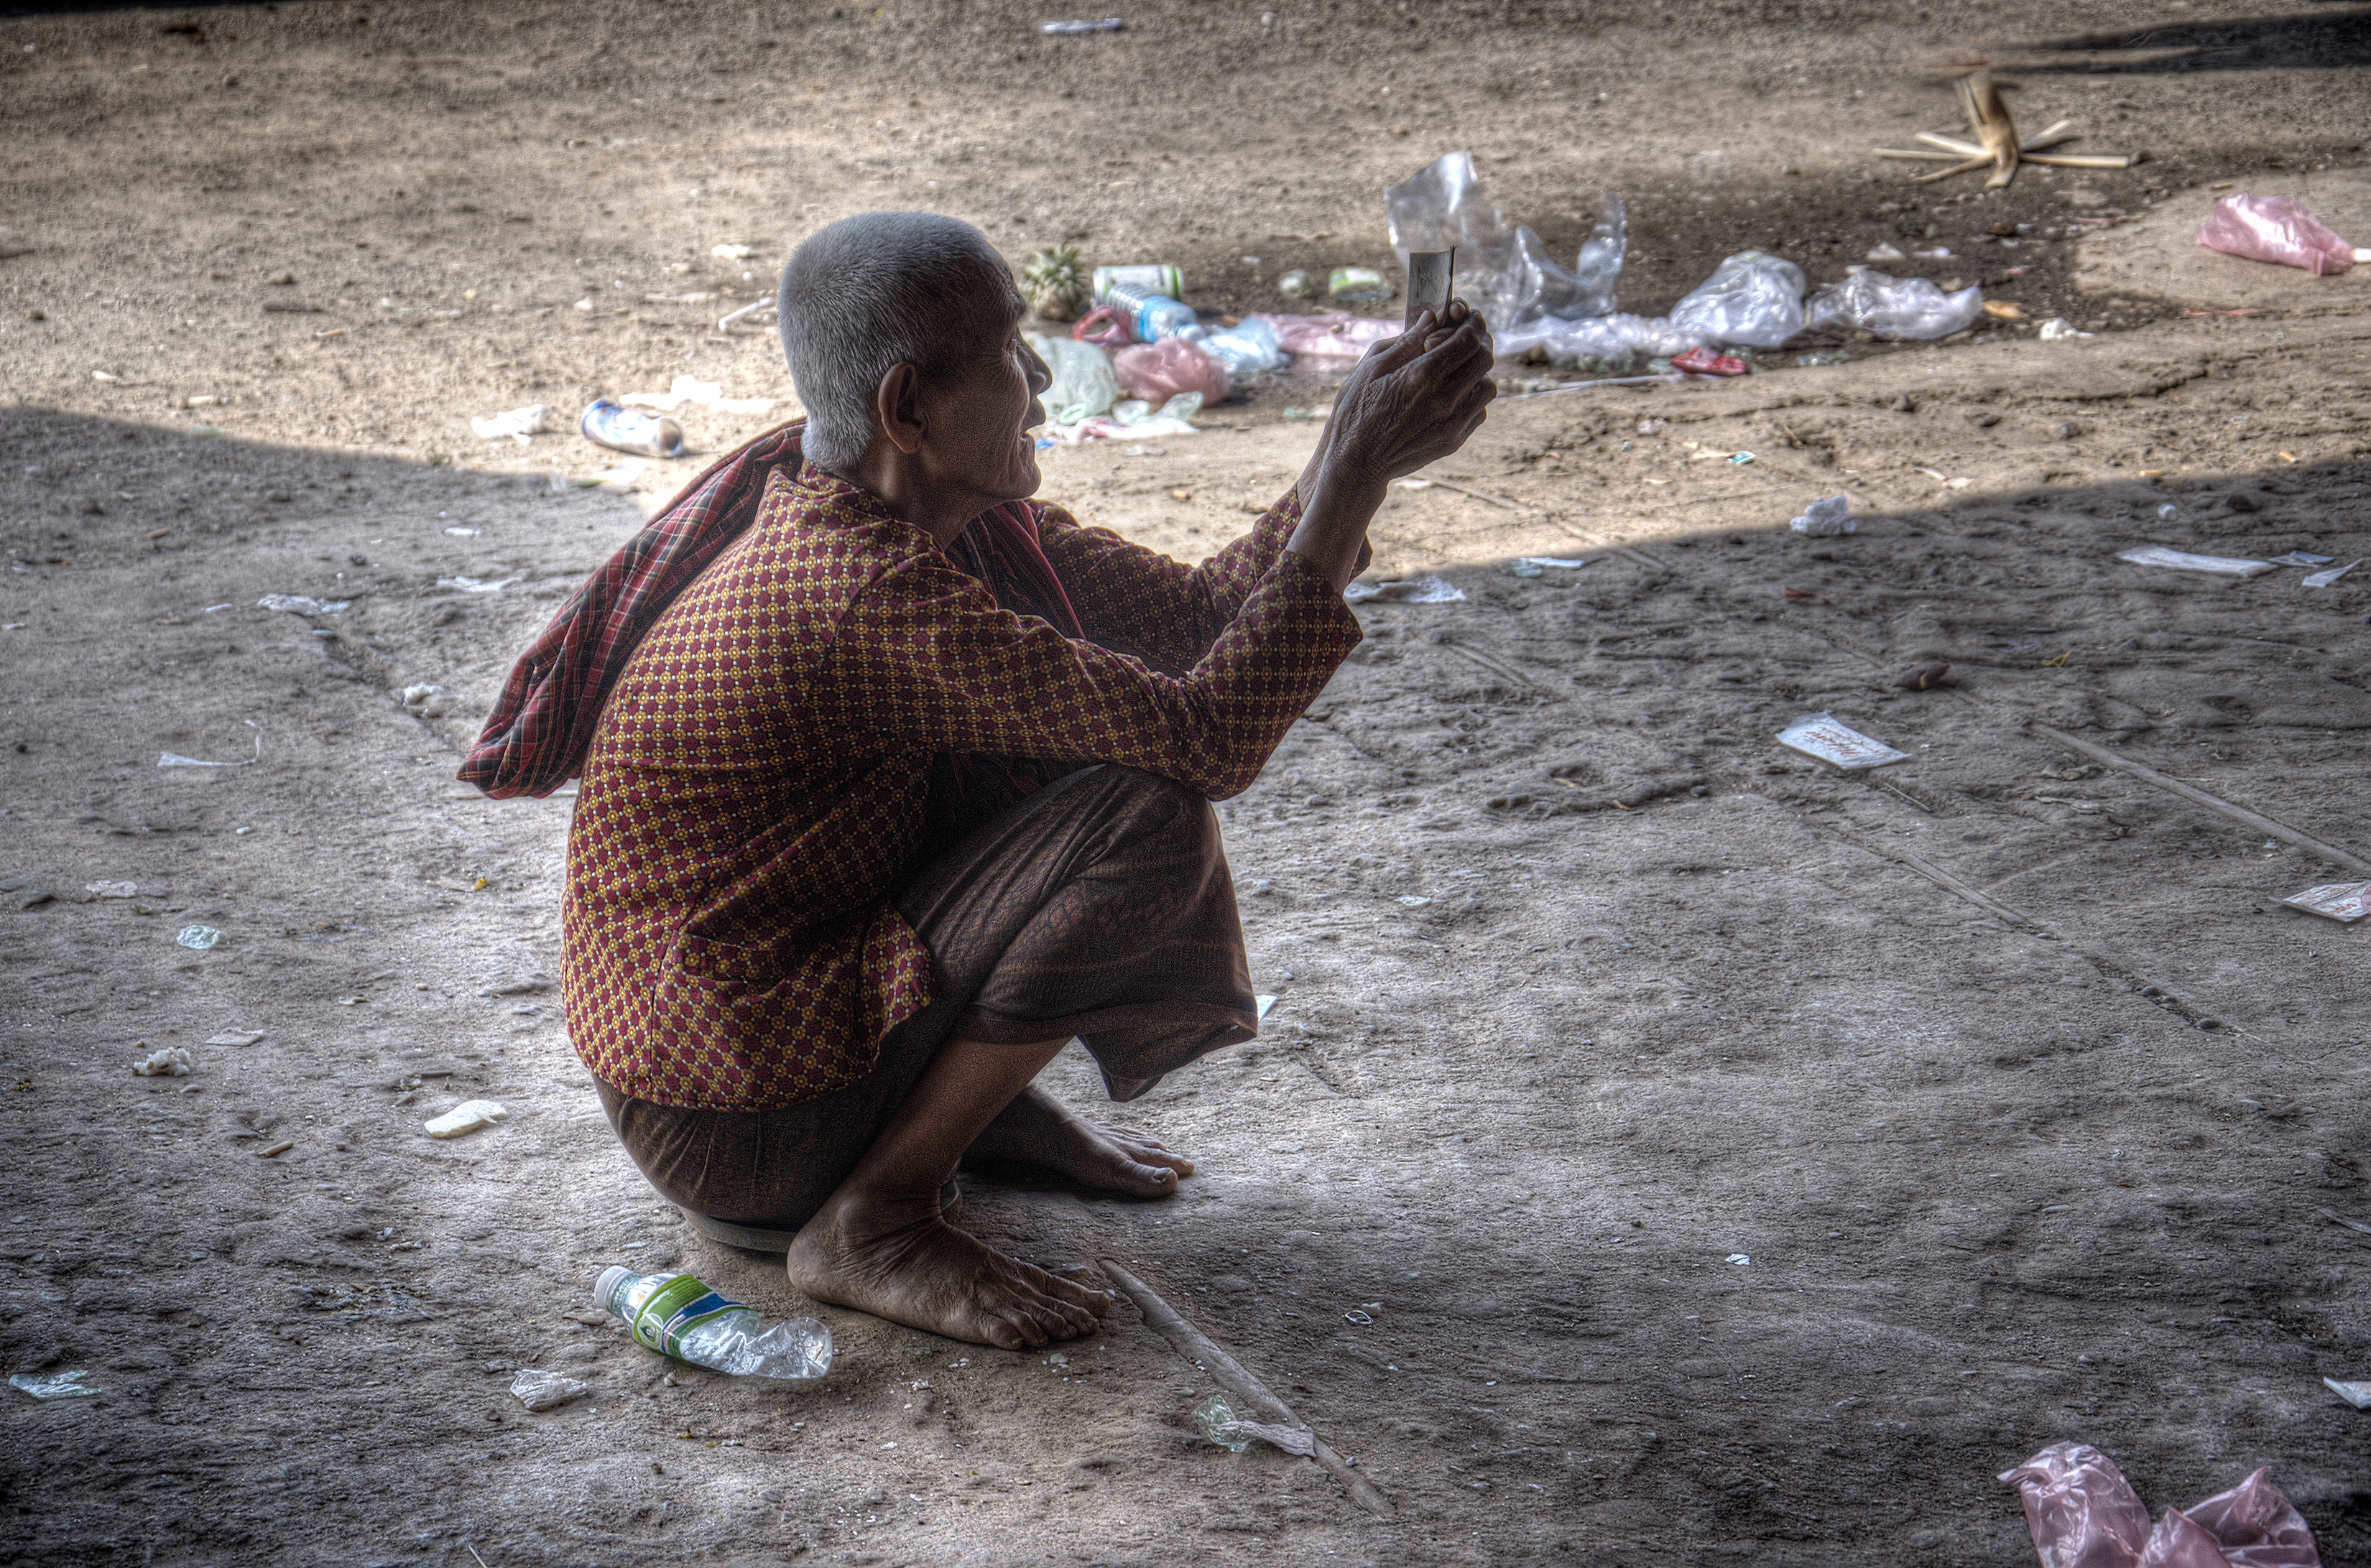 An old widow begging for food and money in Kampong Cham Province, Cambodia